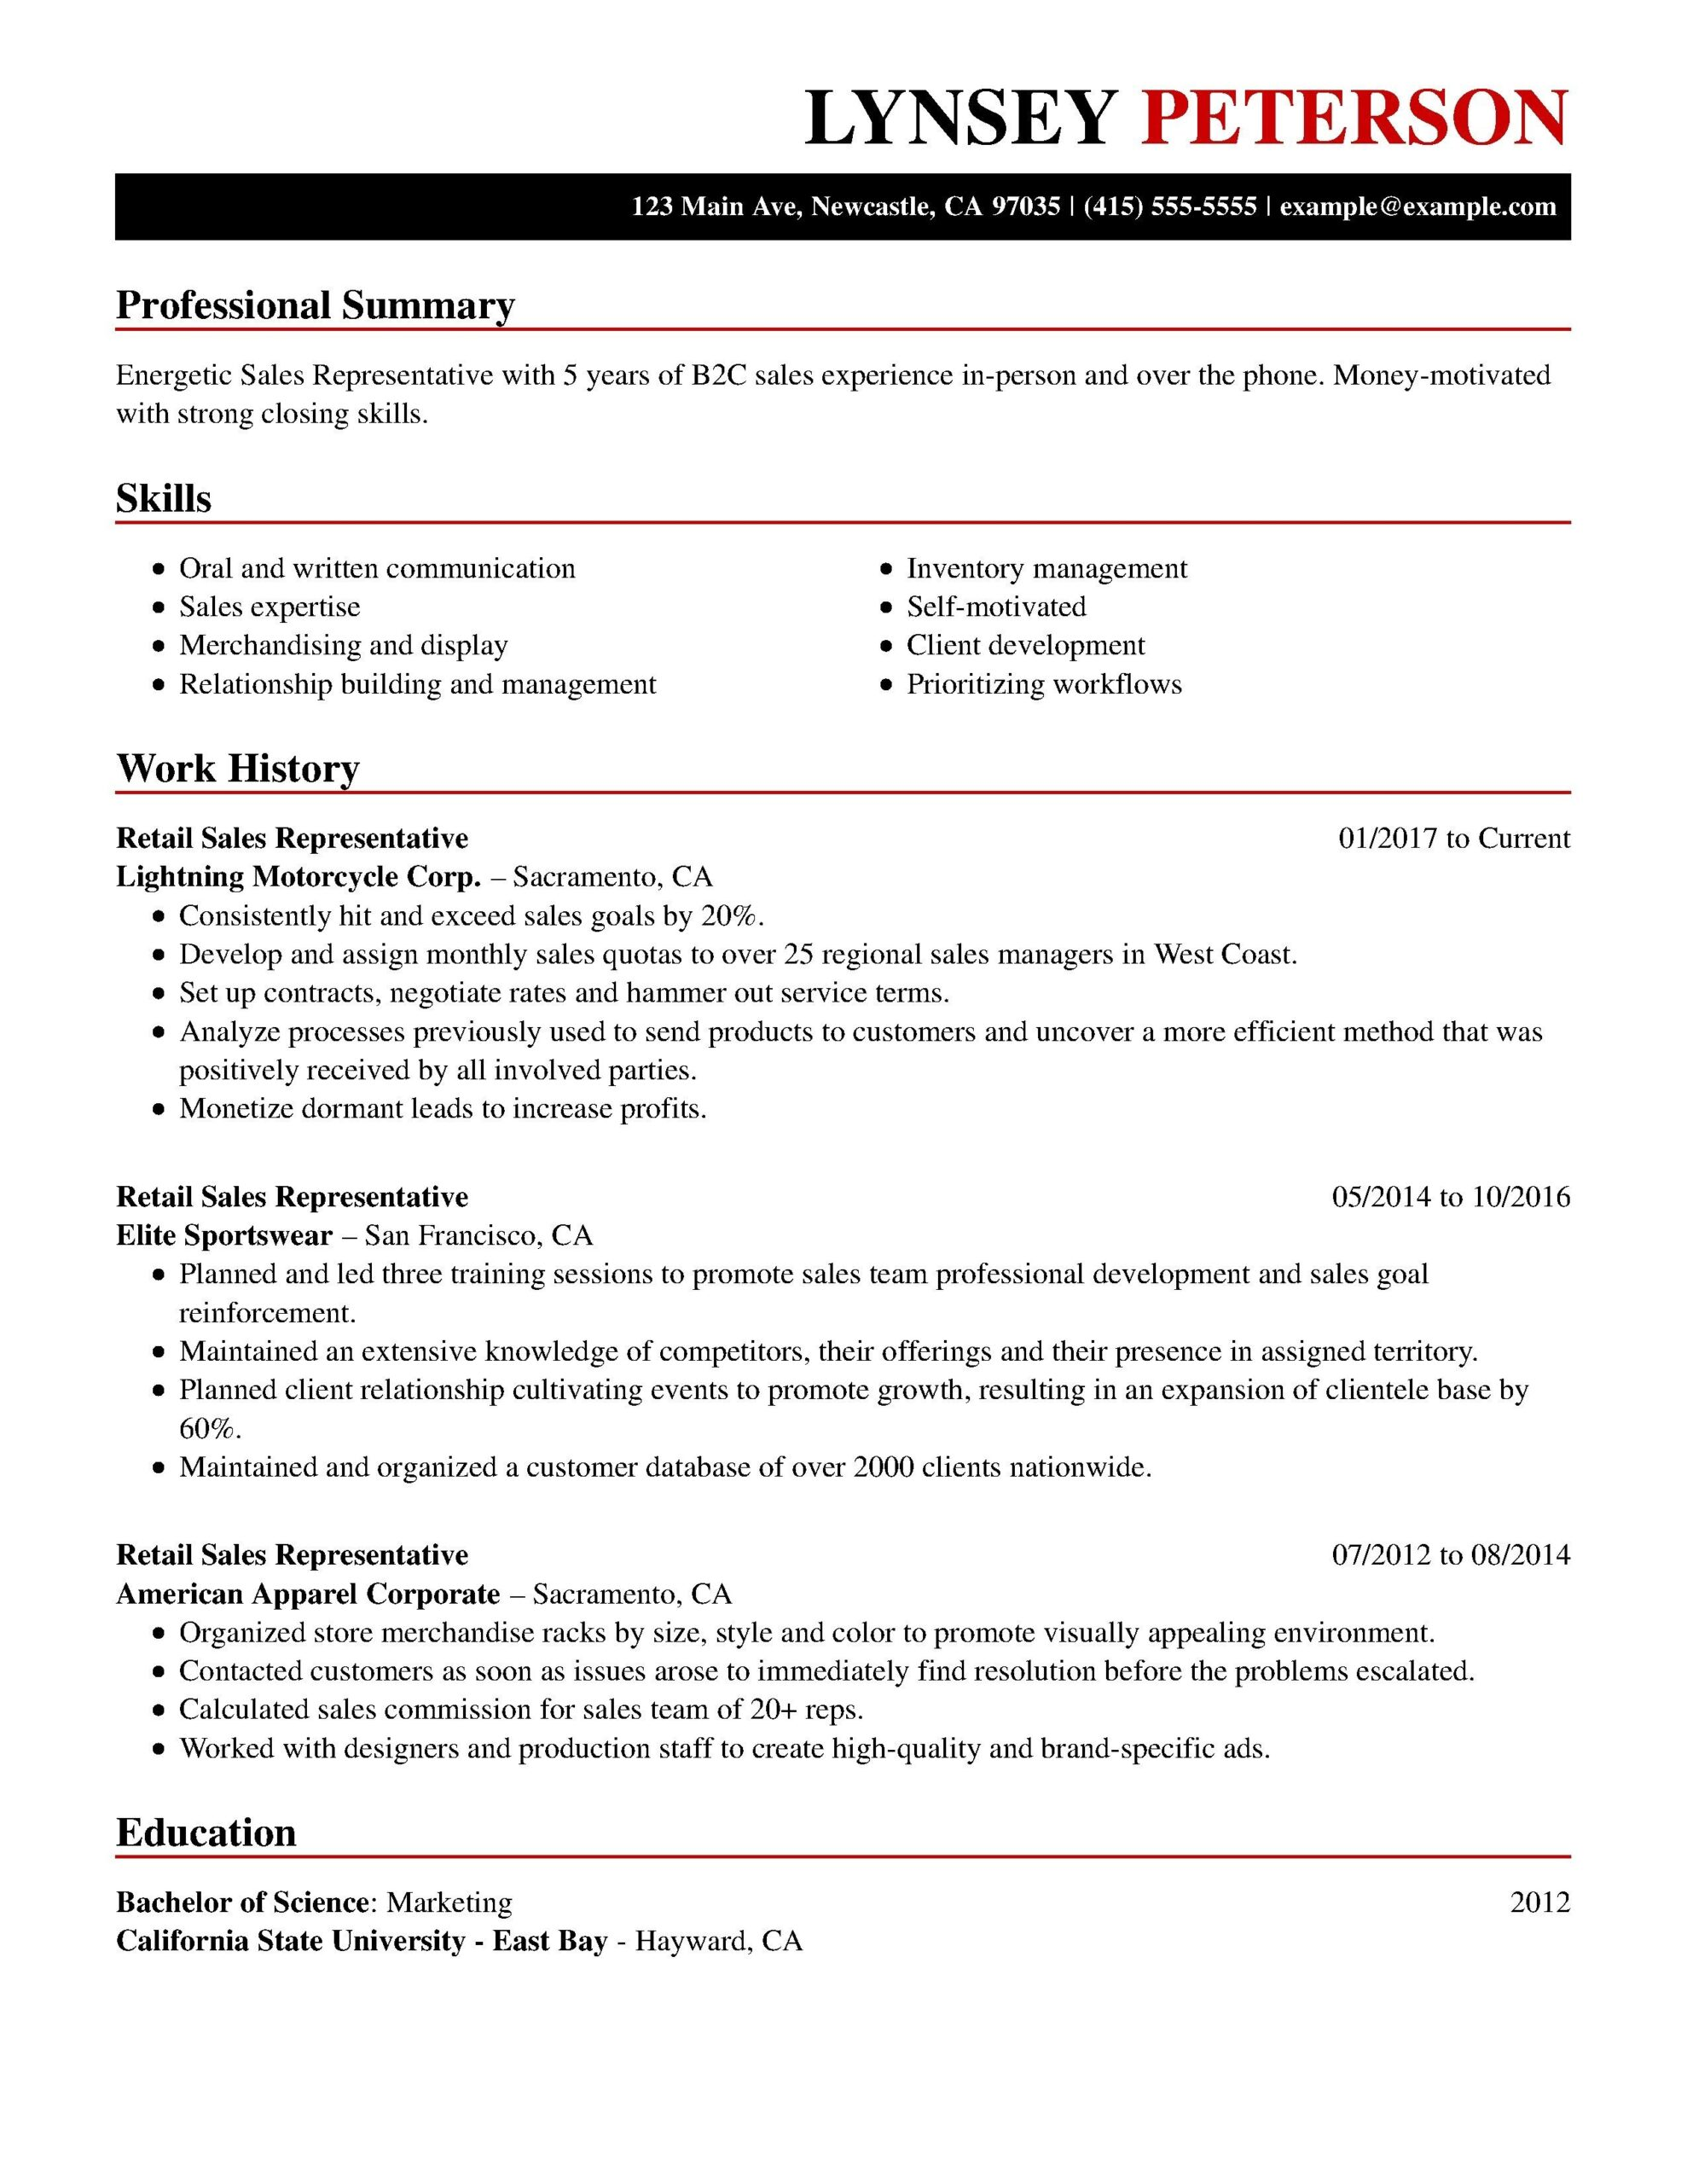 customer service resume examples professional good skills escalation engineer mis entry Resume Escalation Engineer Resume